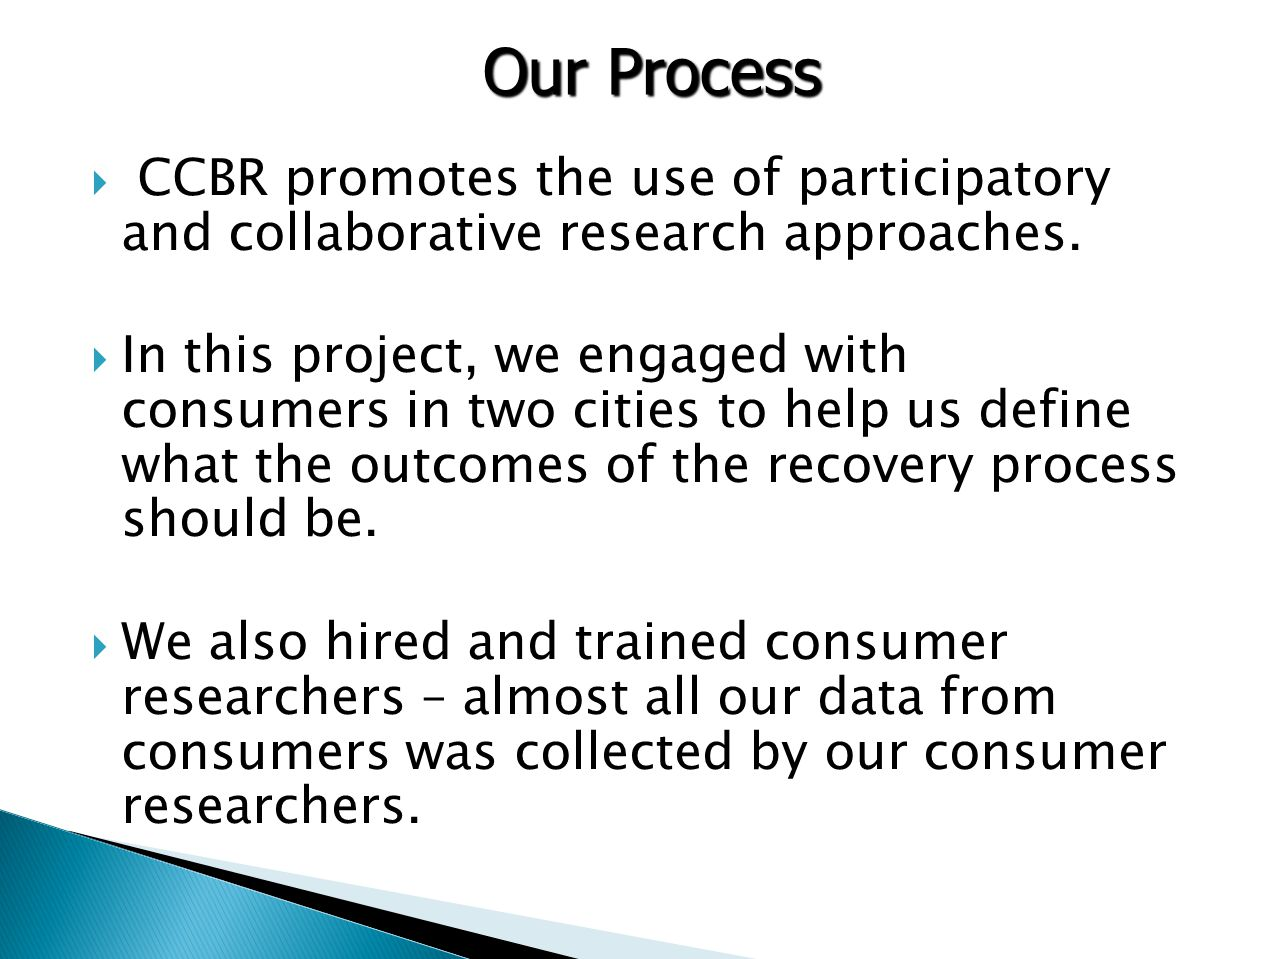  CCBR promotes the use of participatory and collaborative research approaches.